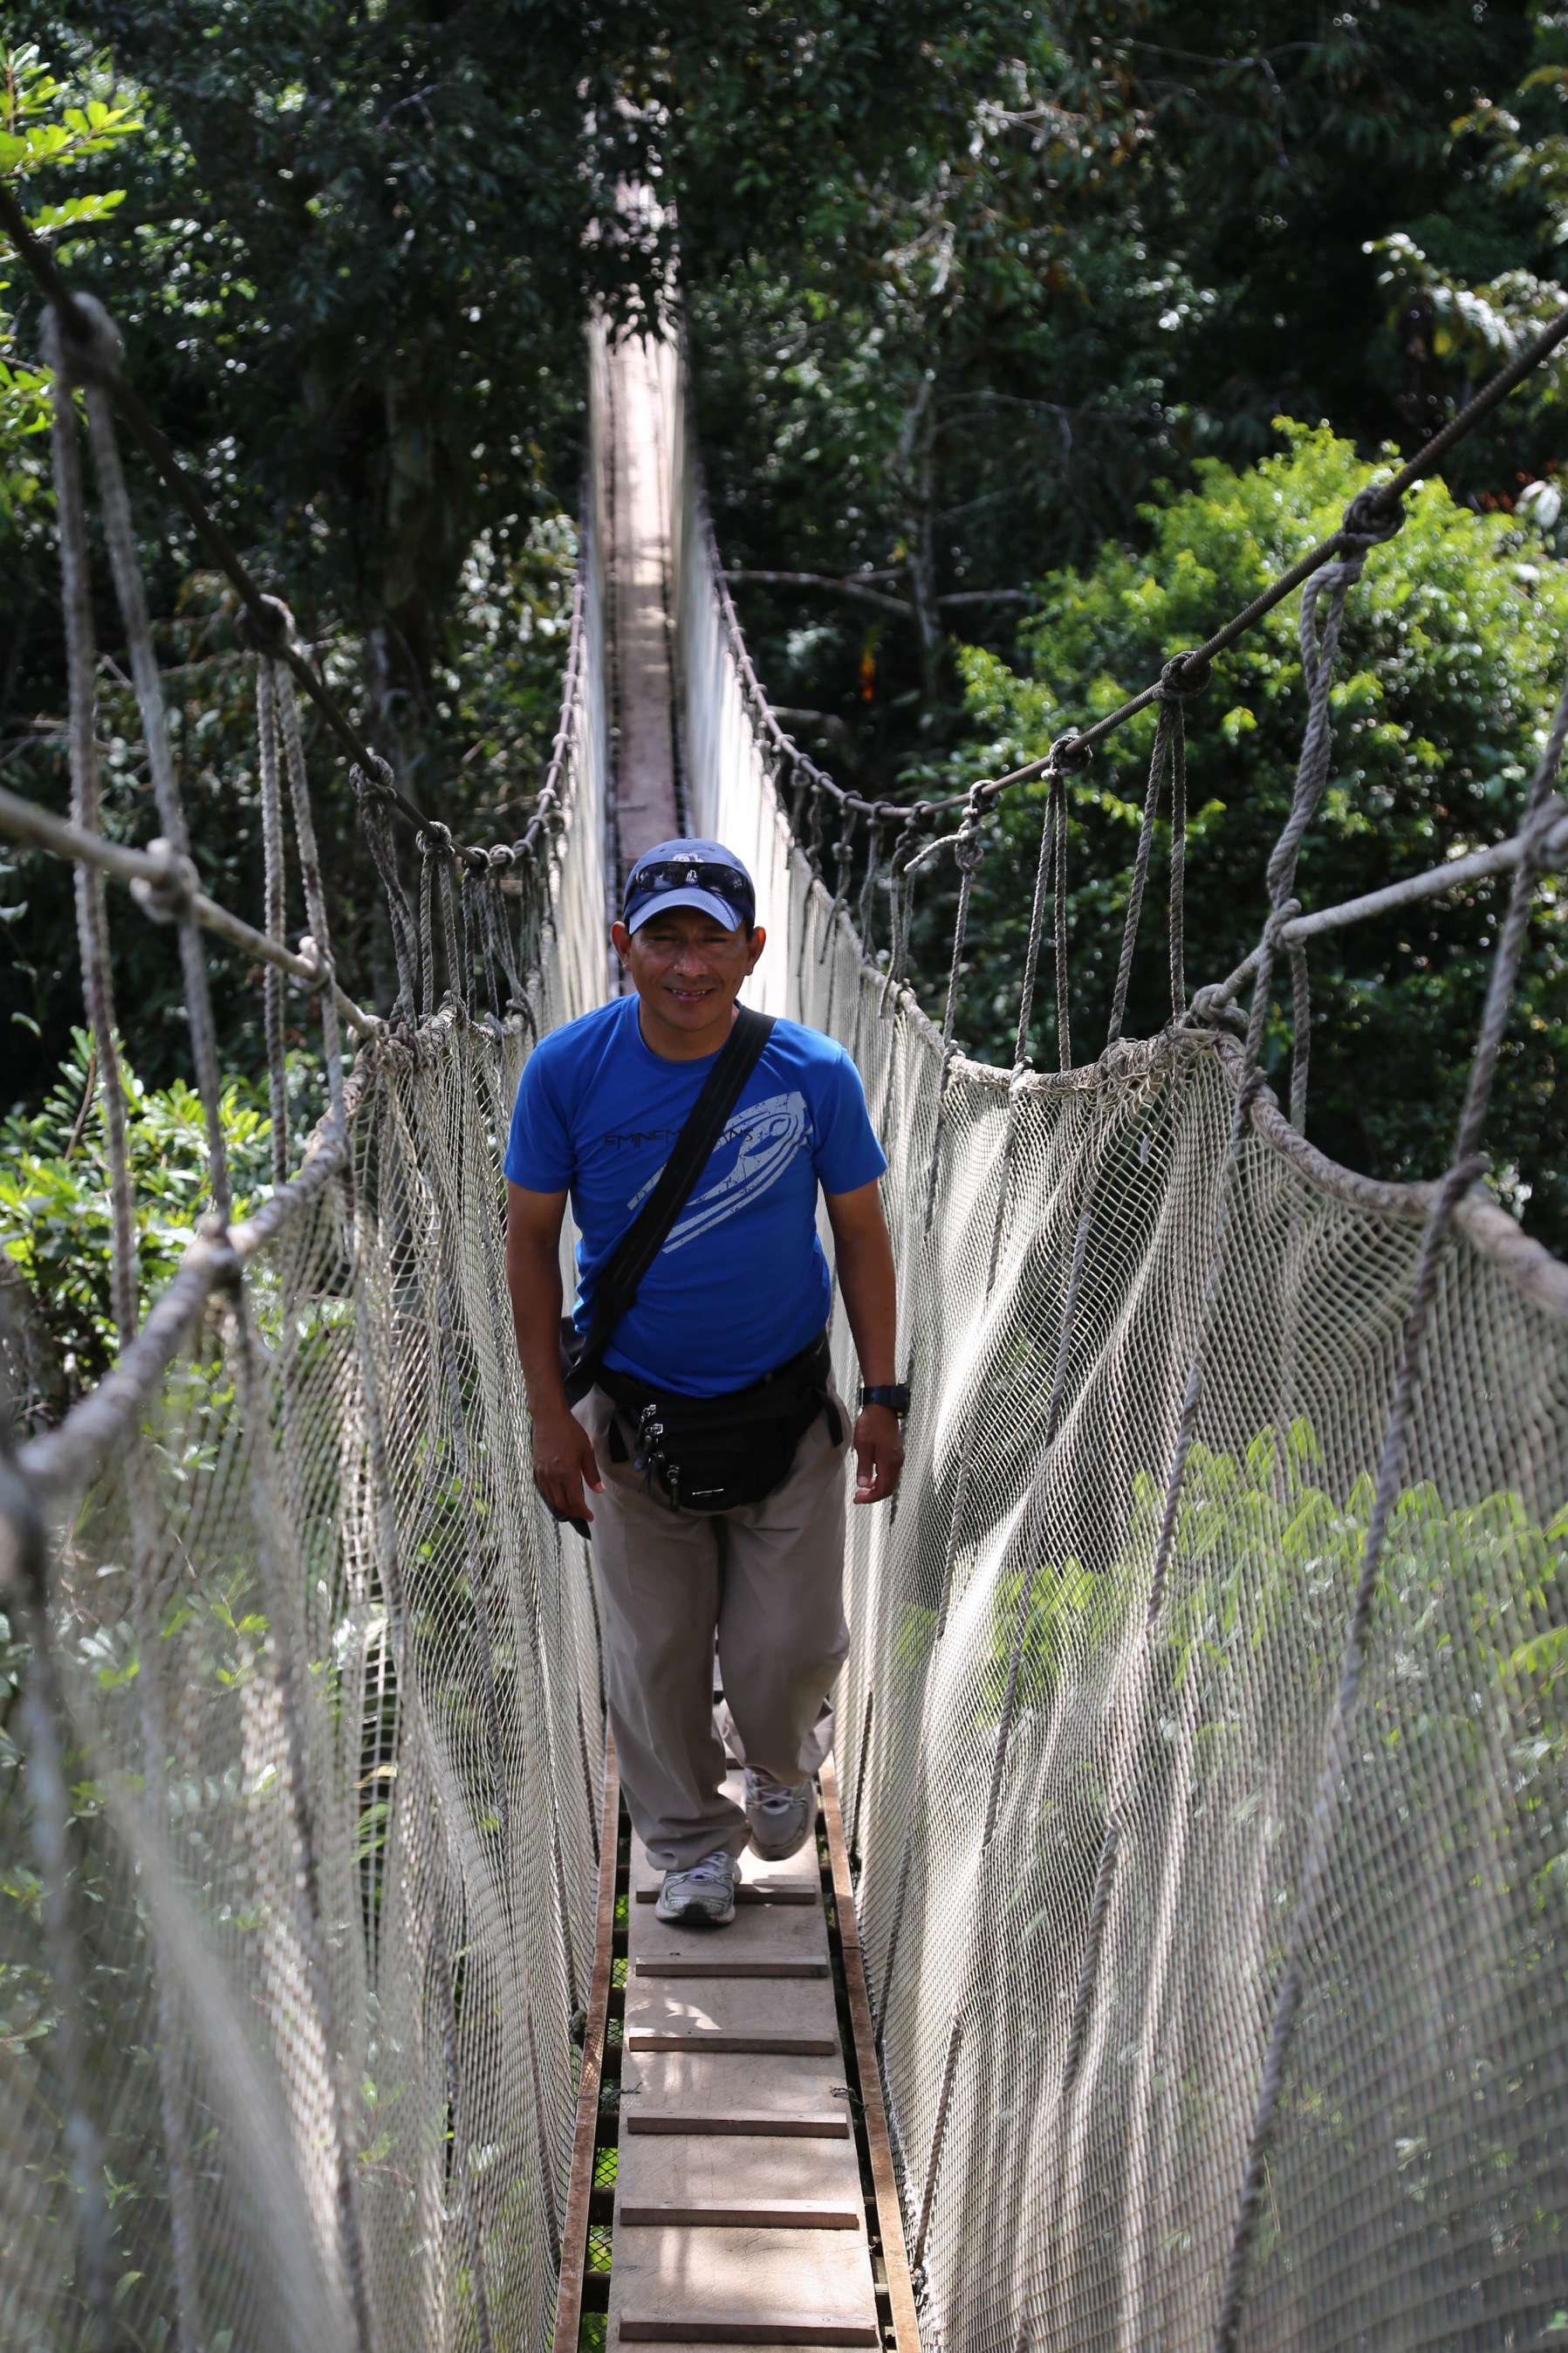 Guide Willie Flores Lanza walks along as surely as if he were on the ground below.